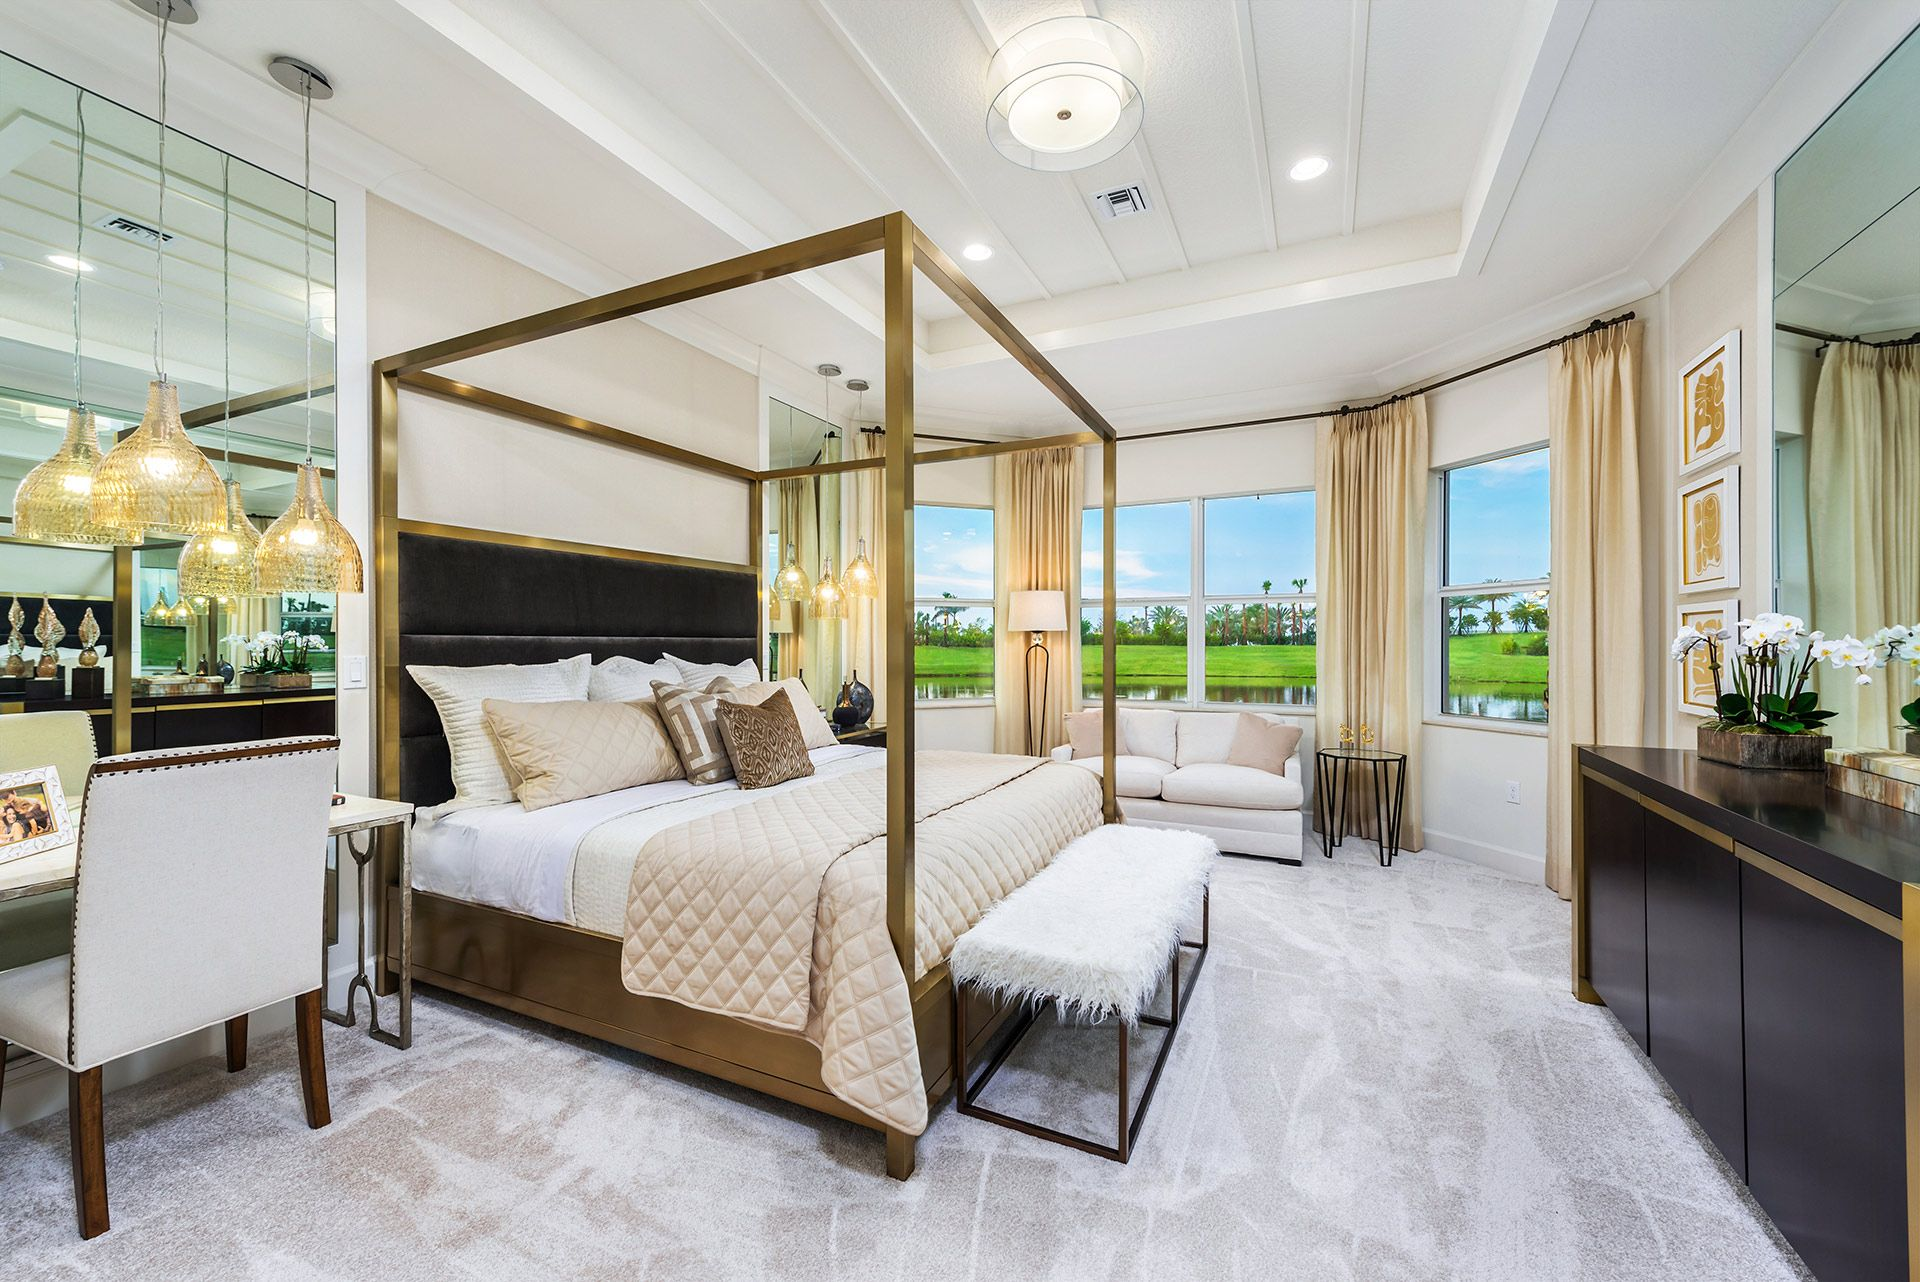 Bedroom featured in the Carlyle By GL Homes in Martin-St. Lucie-Okeechobee Counties, FL